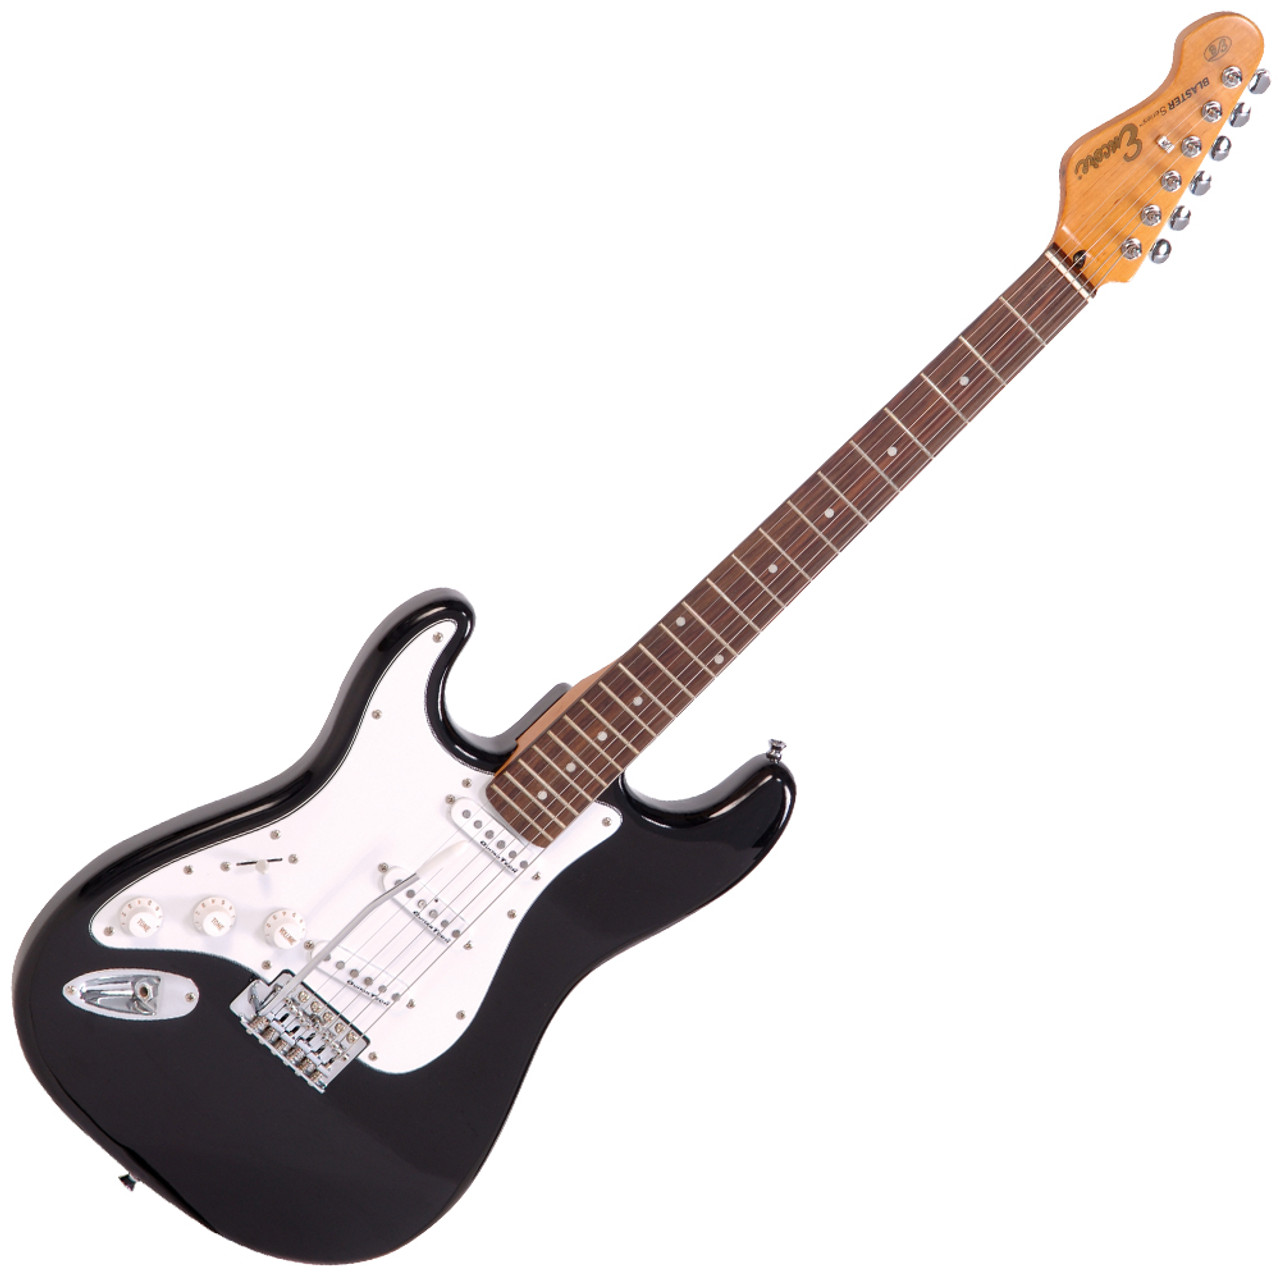 Gloss Black Encore E99 Electric Guitar